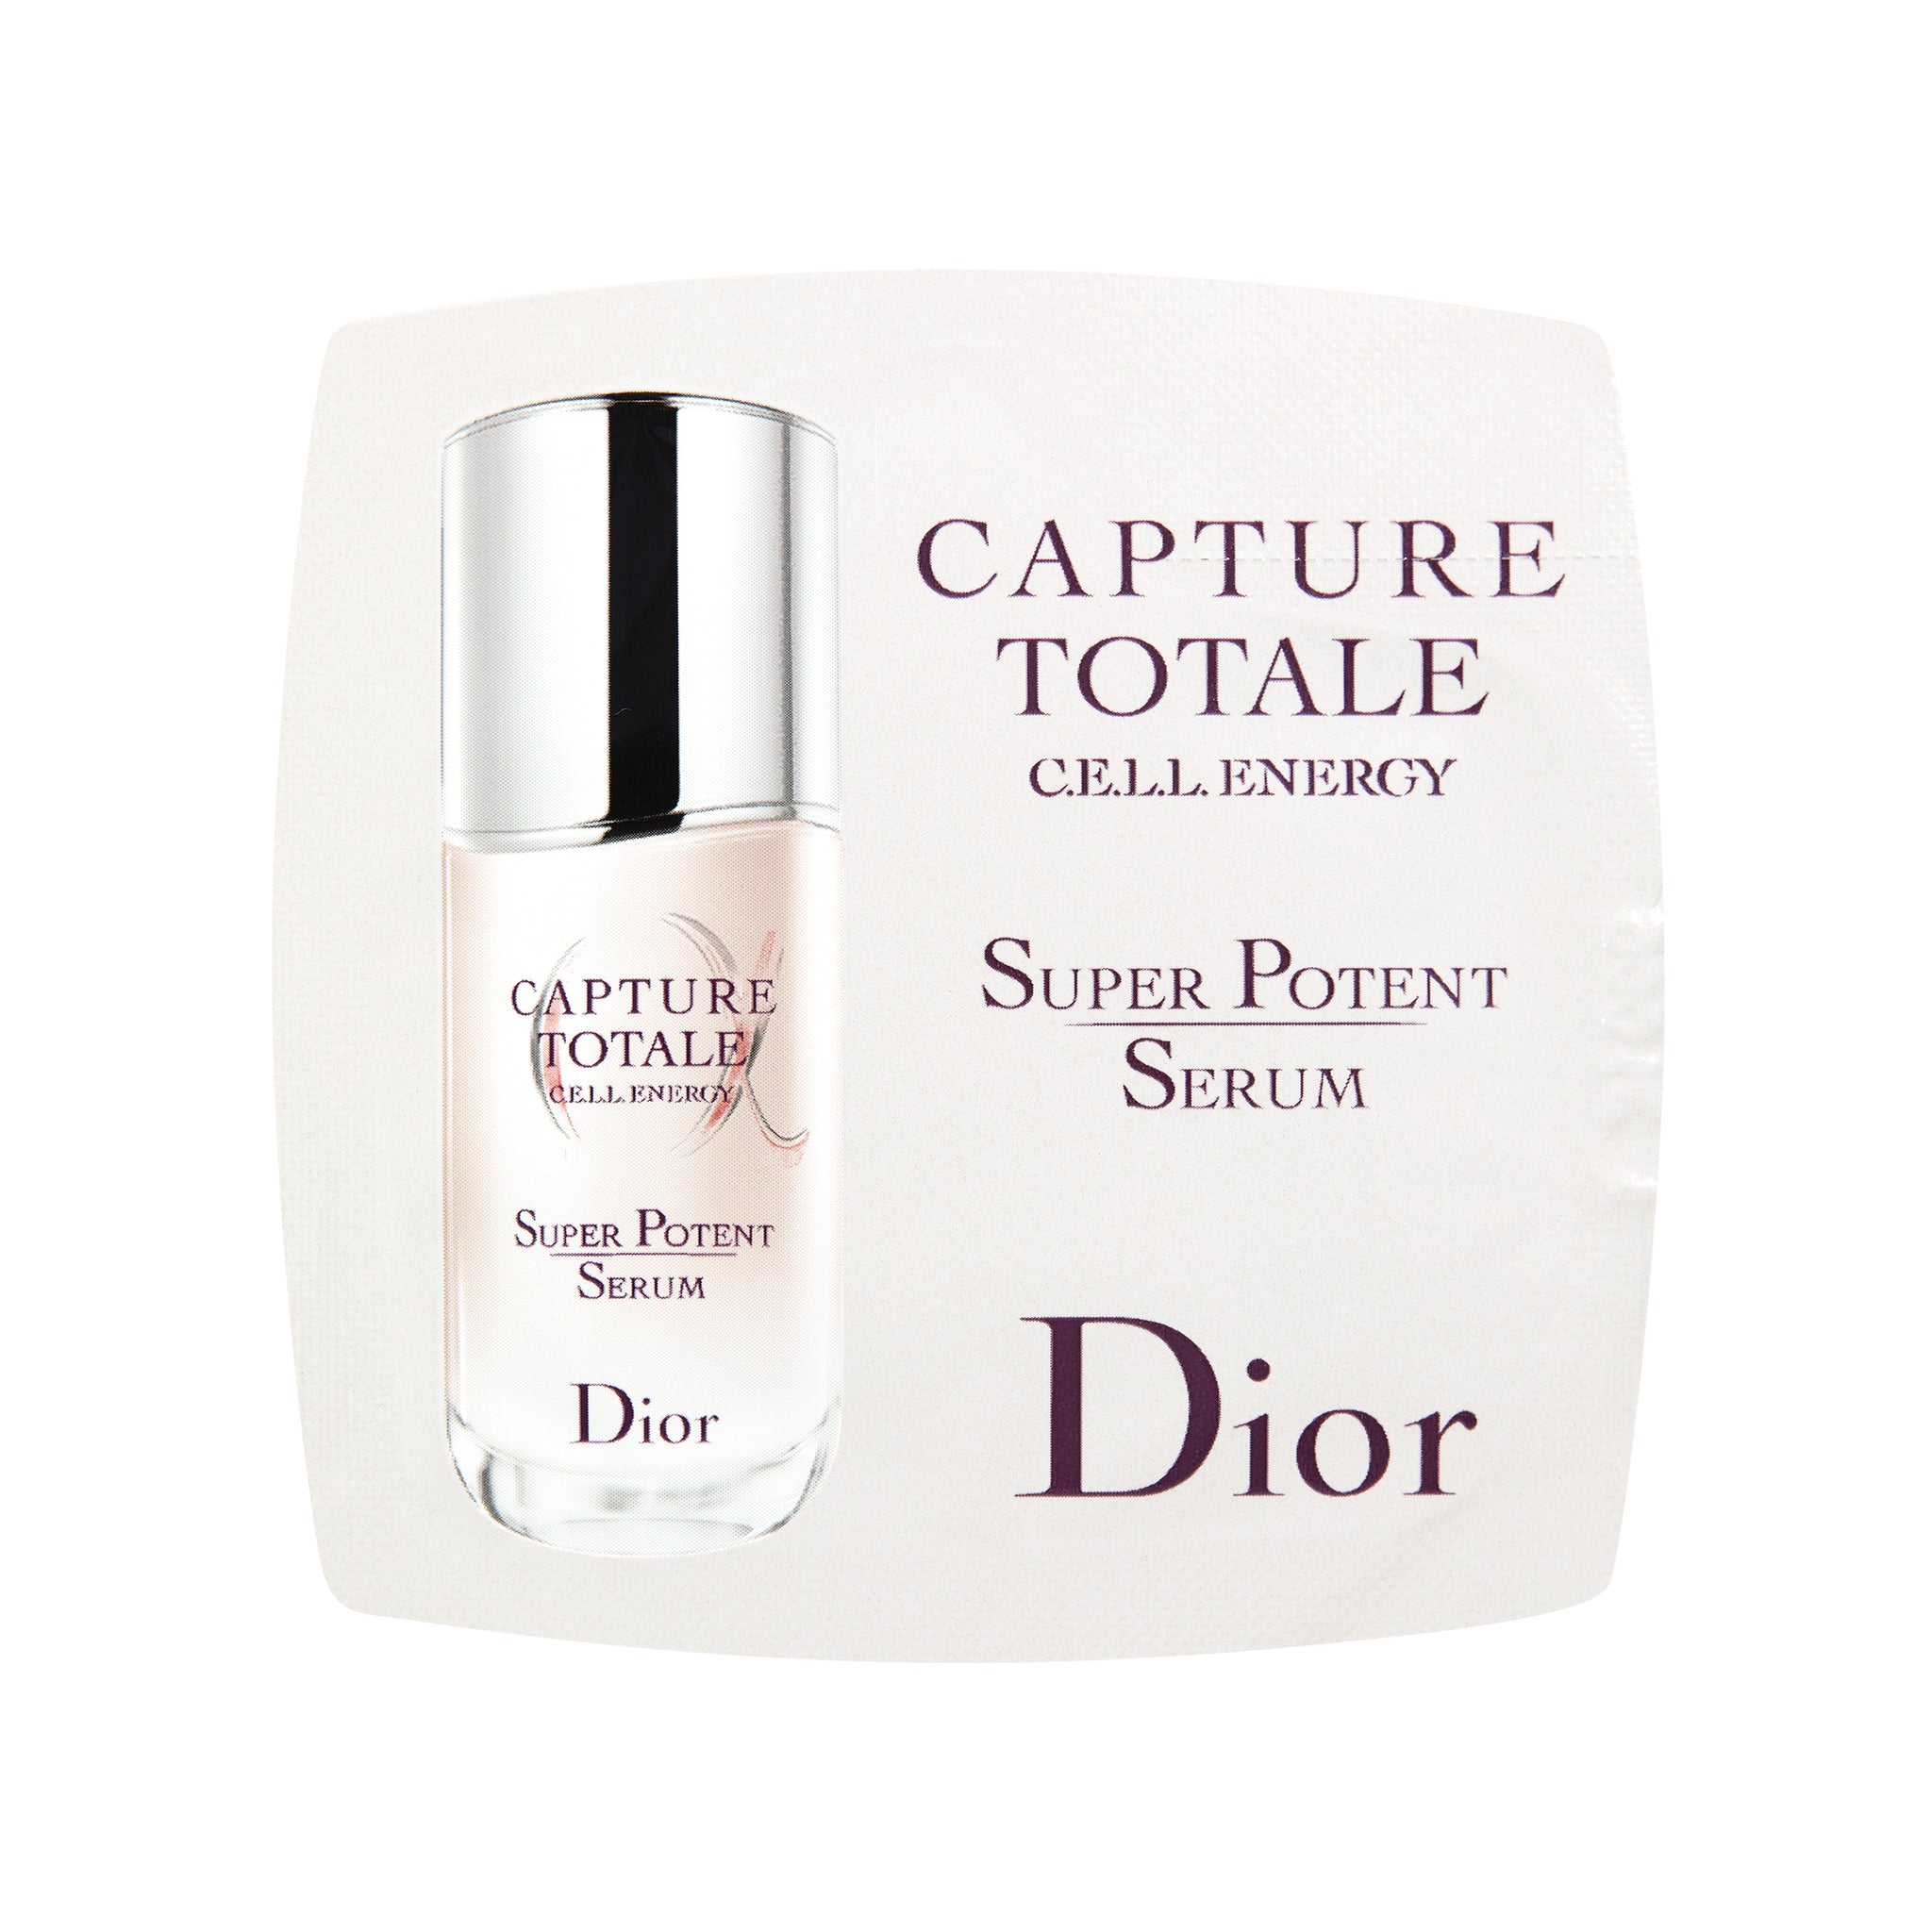 Capture Totale Super Potent Serum 1ml Sample